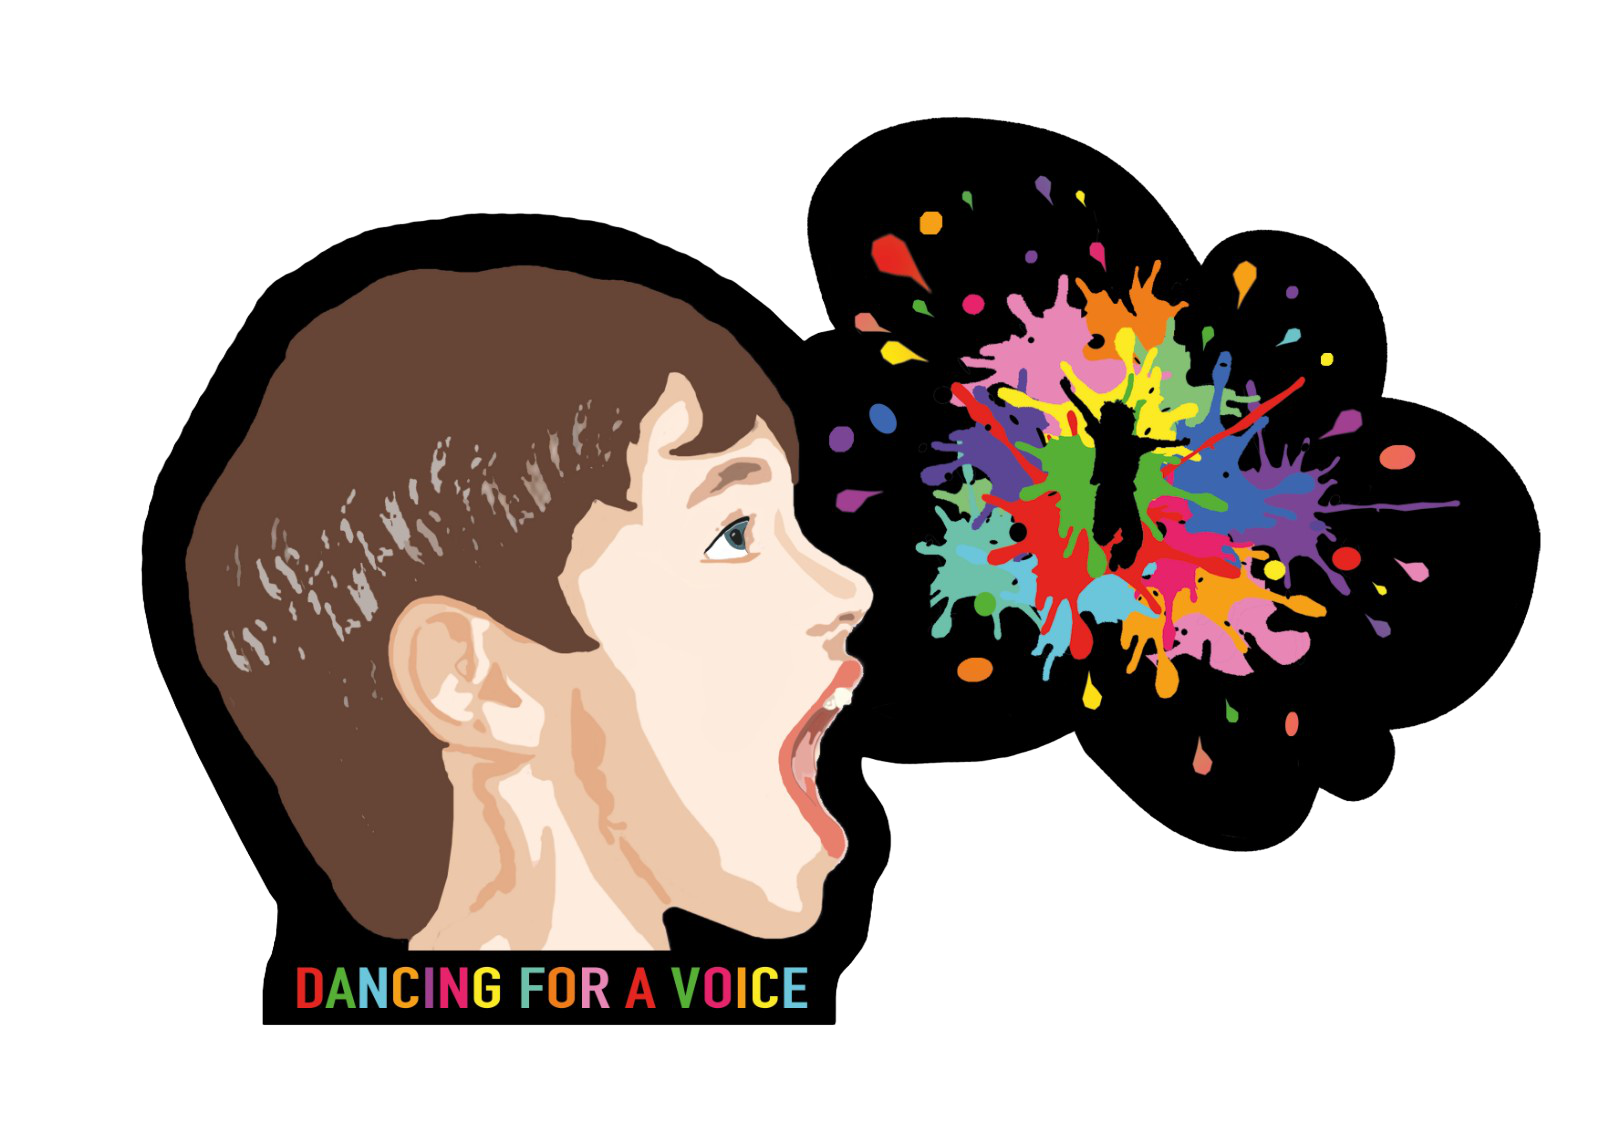 Dancing Out For A Voice